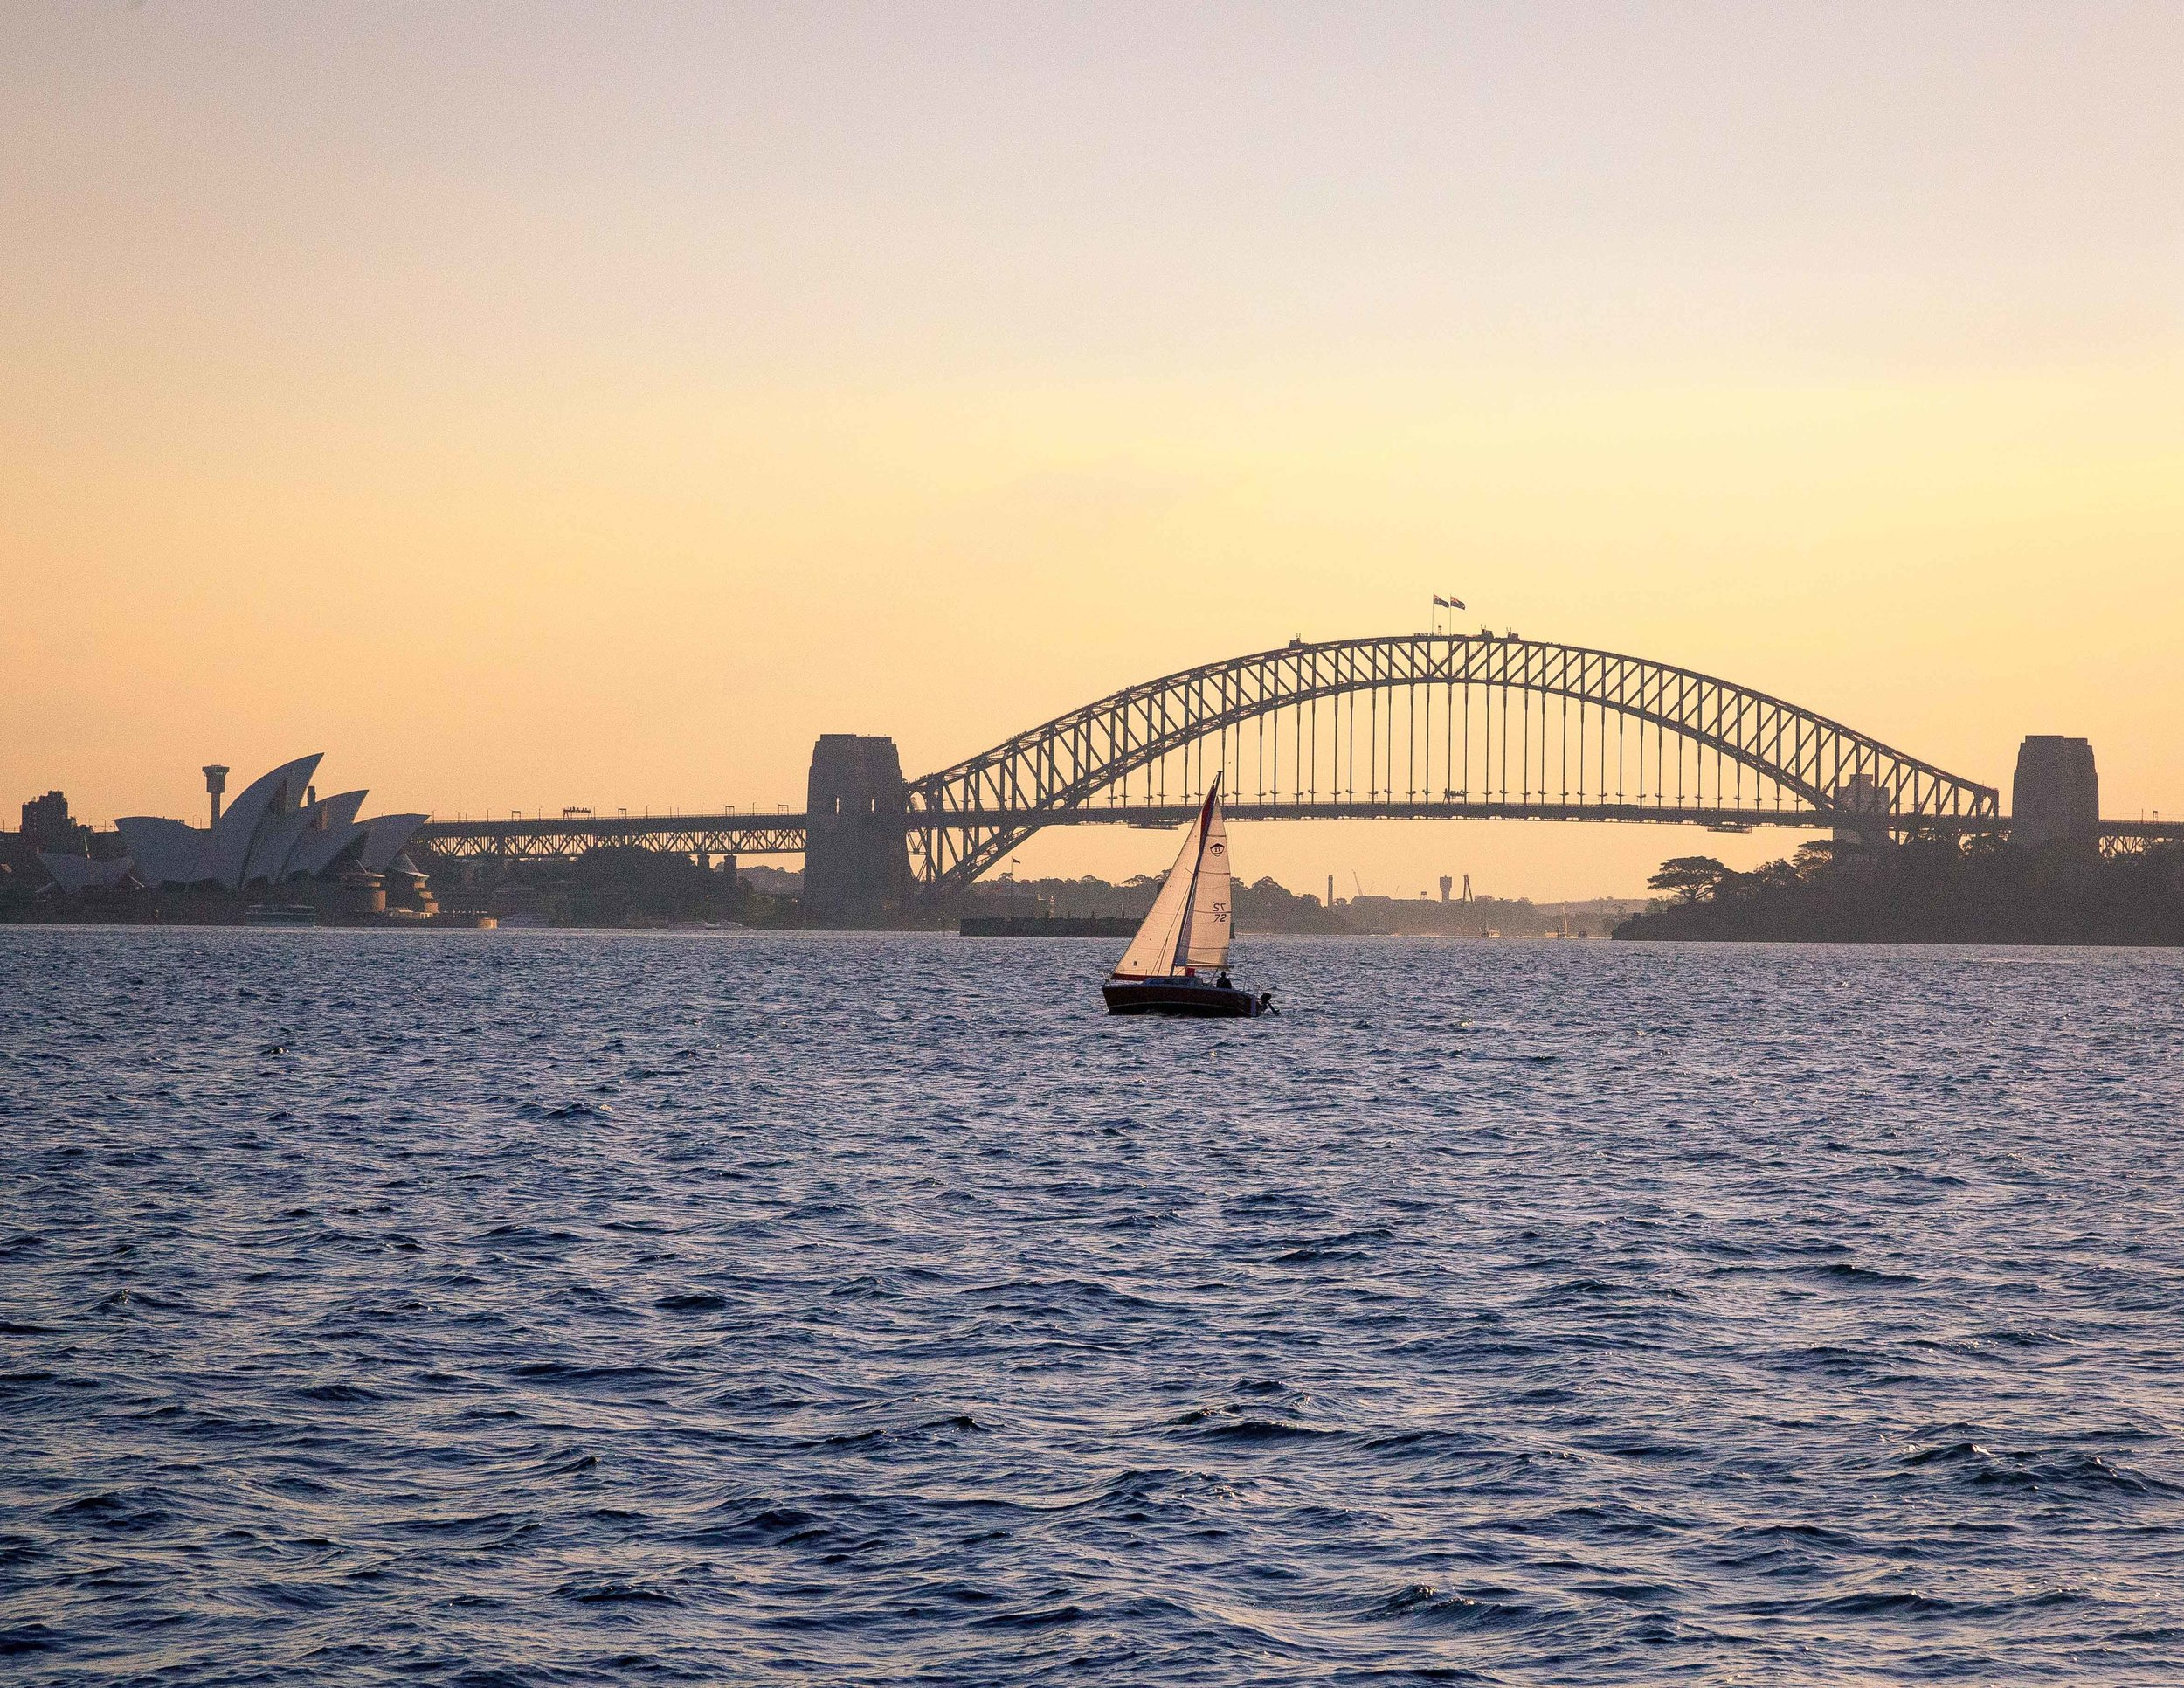 The view of Sydney Harbour from Watson's Bay